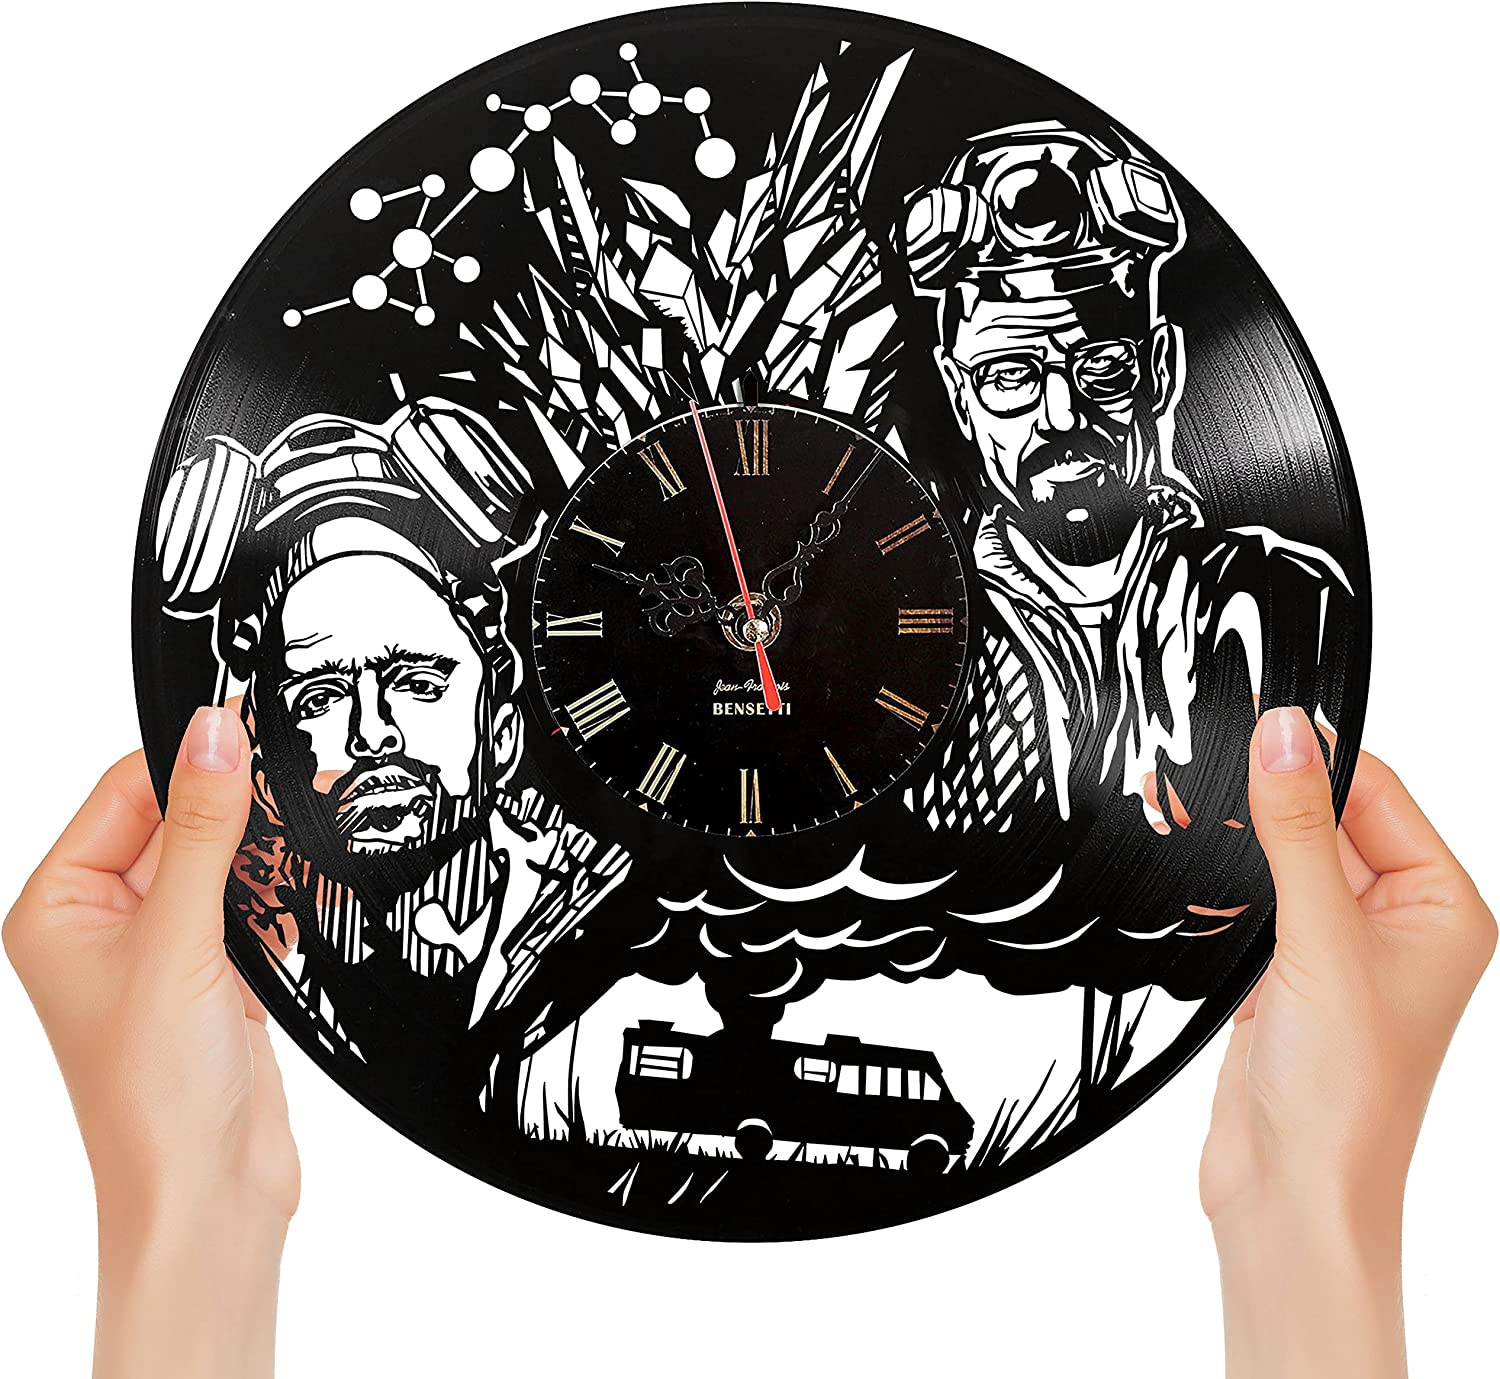 High order Exquisite Breaking Bad Vinyl Max 74% OFF Clock Designed Limi Brooklyn in